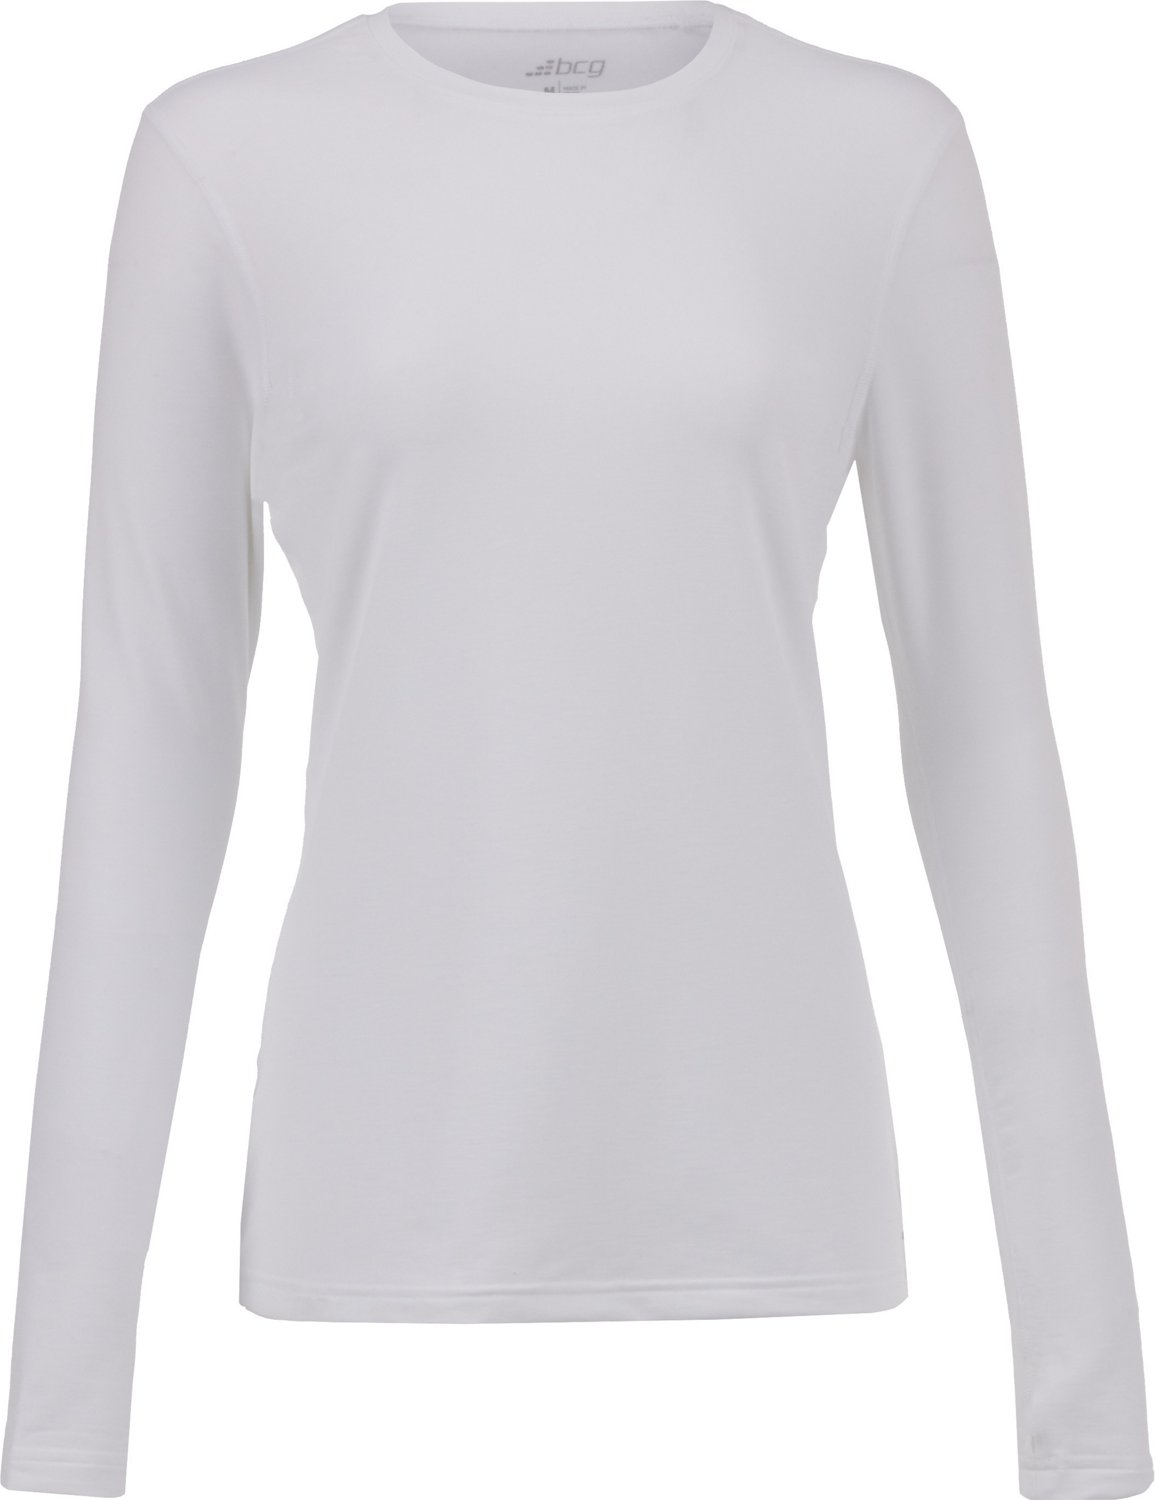 ba521007 Display product reviews for BCG Women's Cold Weather Training Top